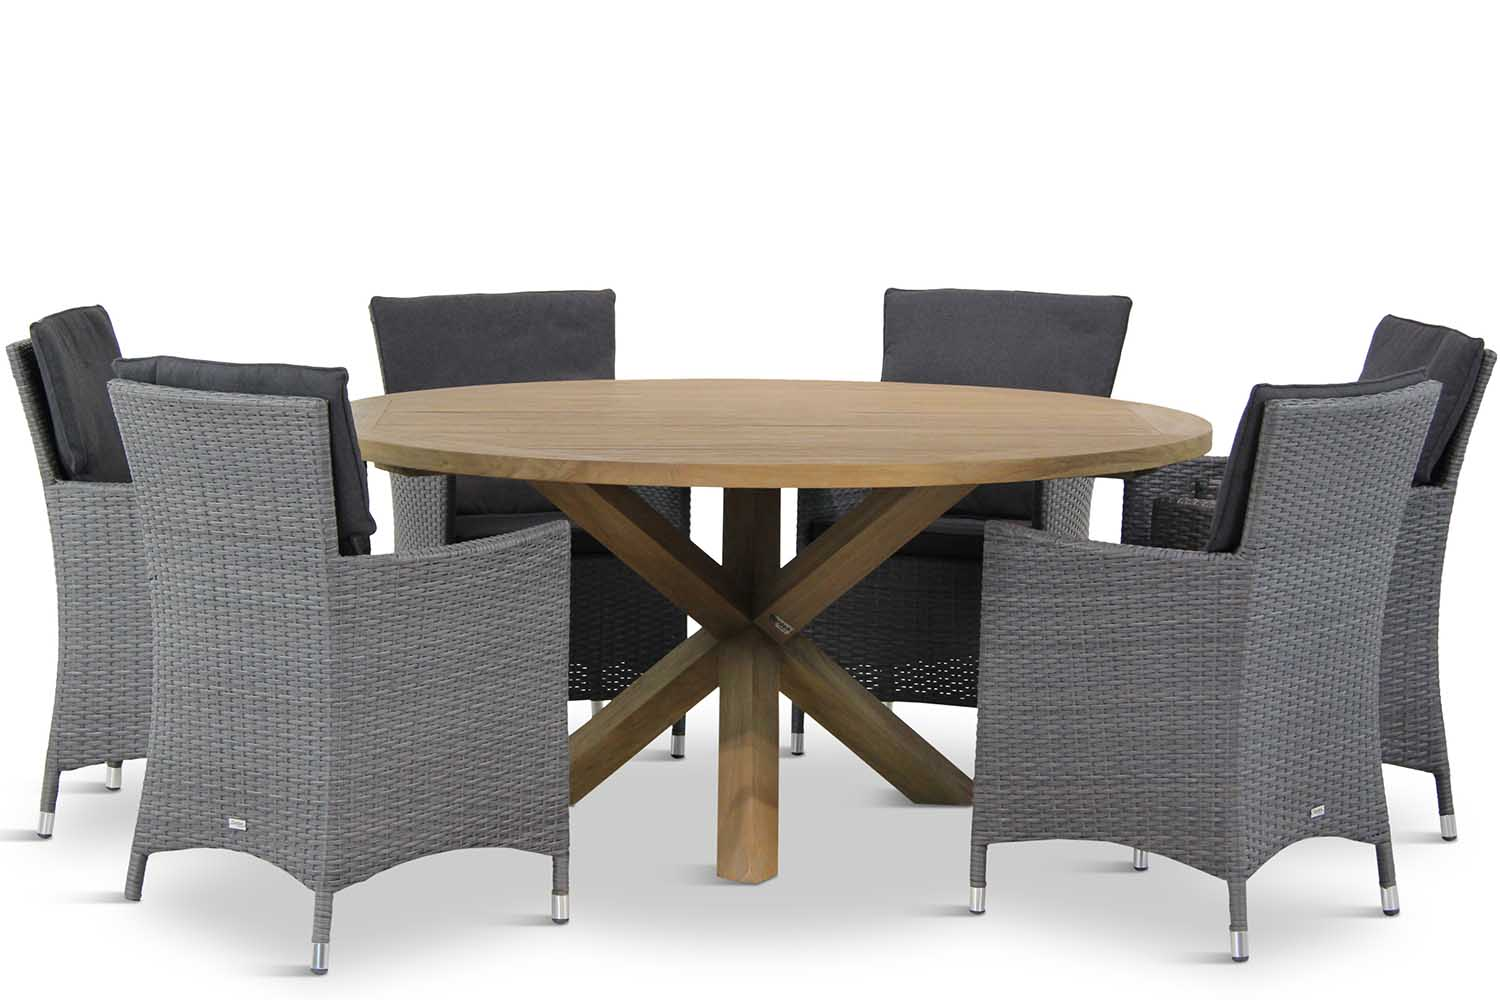 Garden Collections Orlando/Sand City rond 160 cm dining tuinset 7-delig